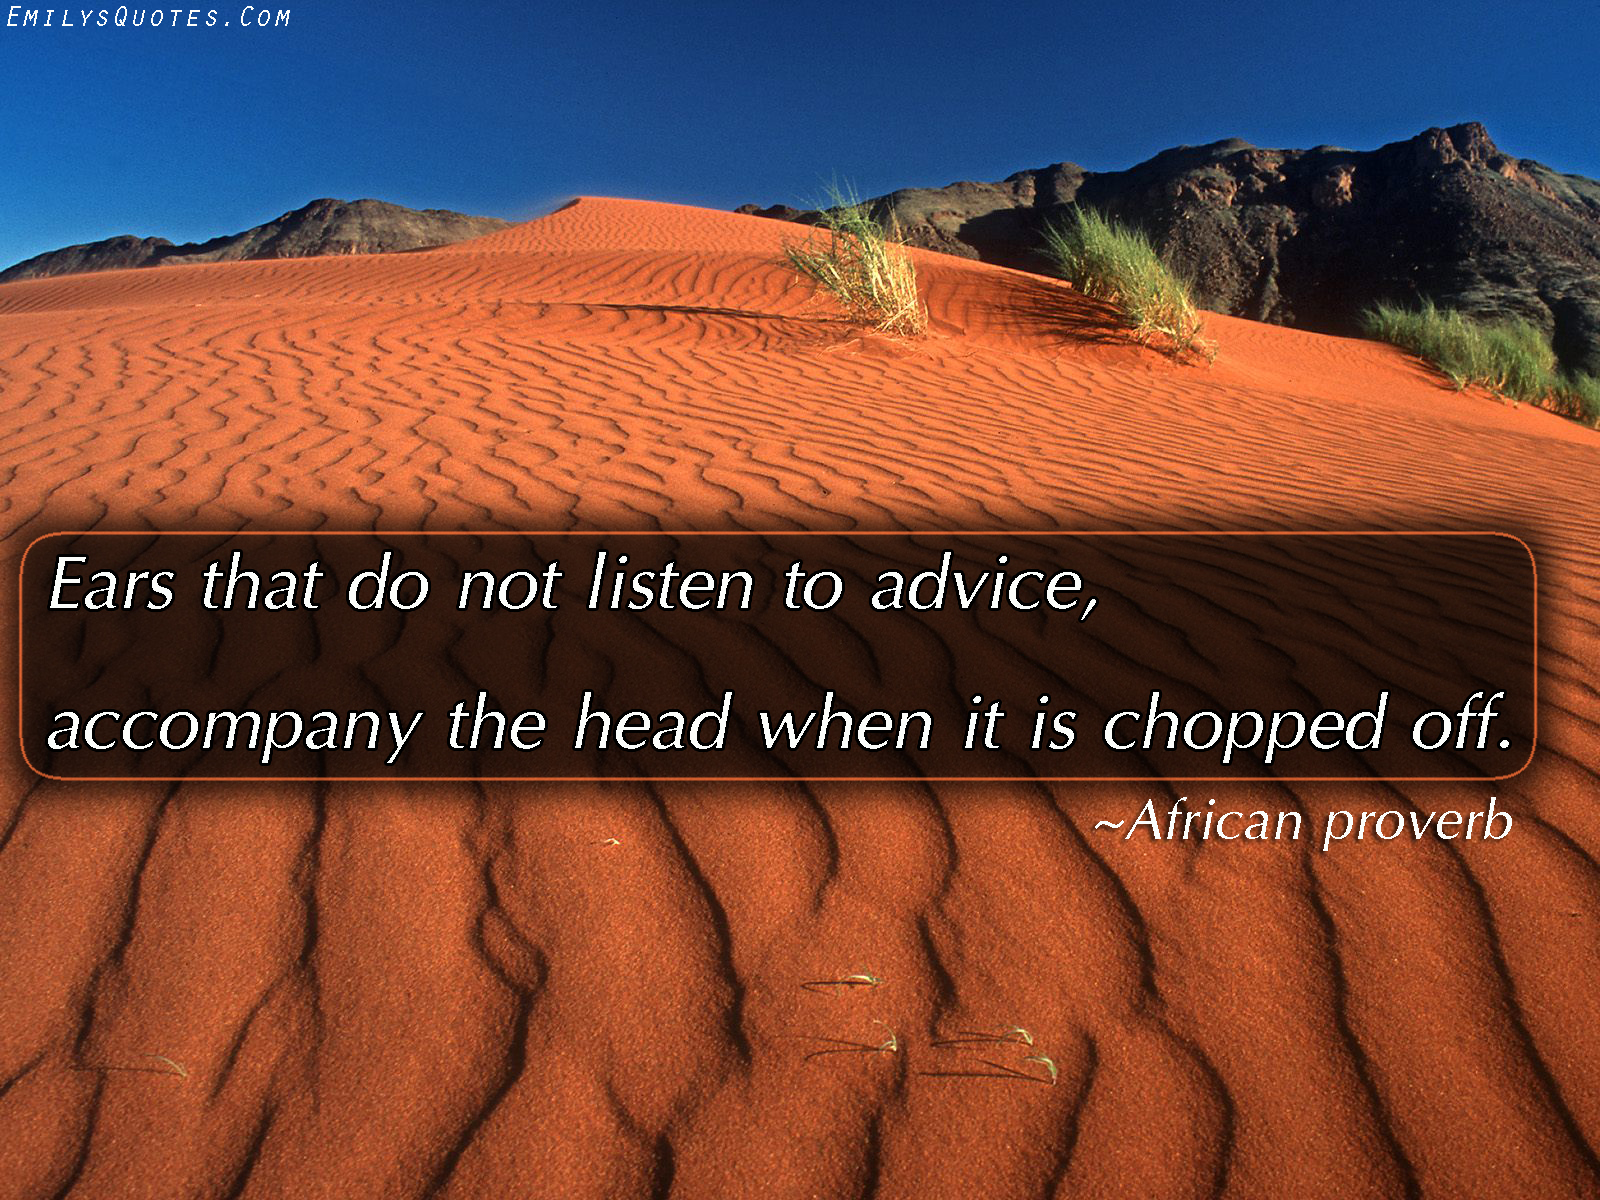 EmilysQuotes.Com - listening, advice, consequences, mistakes, wisdom, African proverb